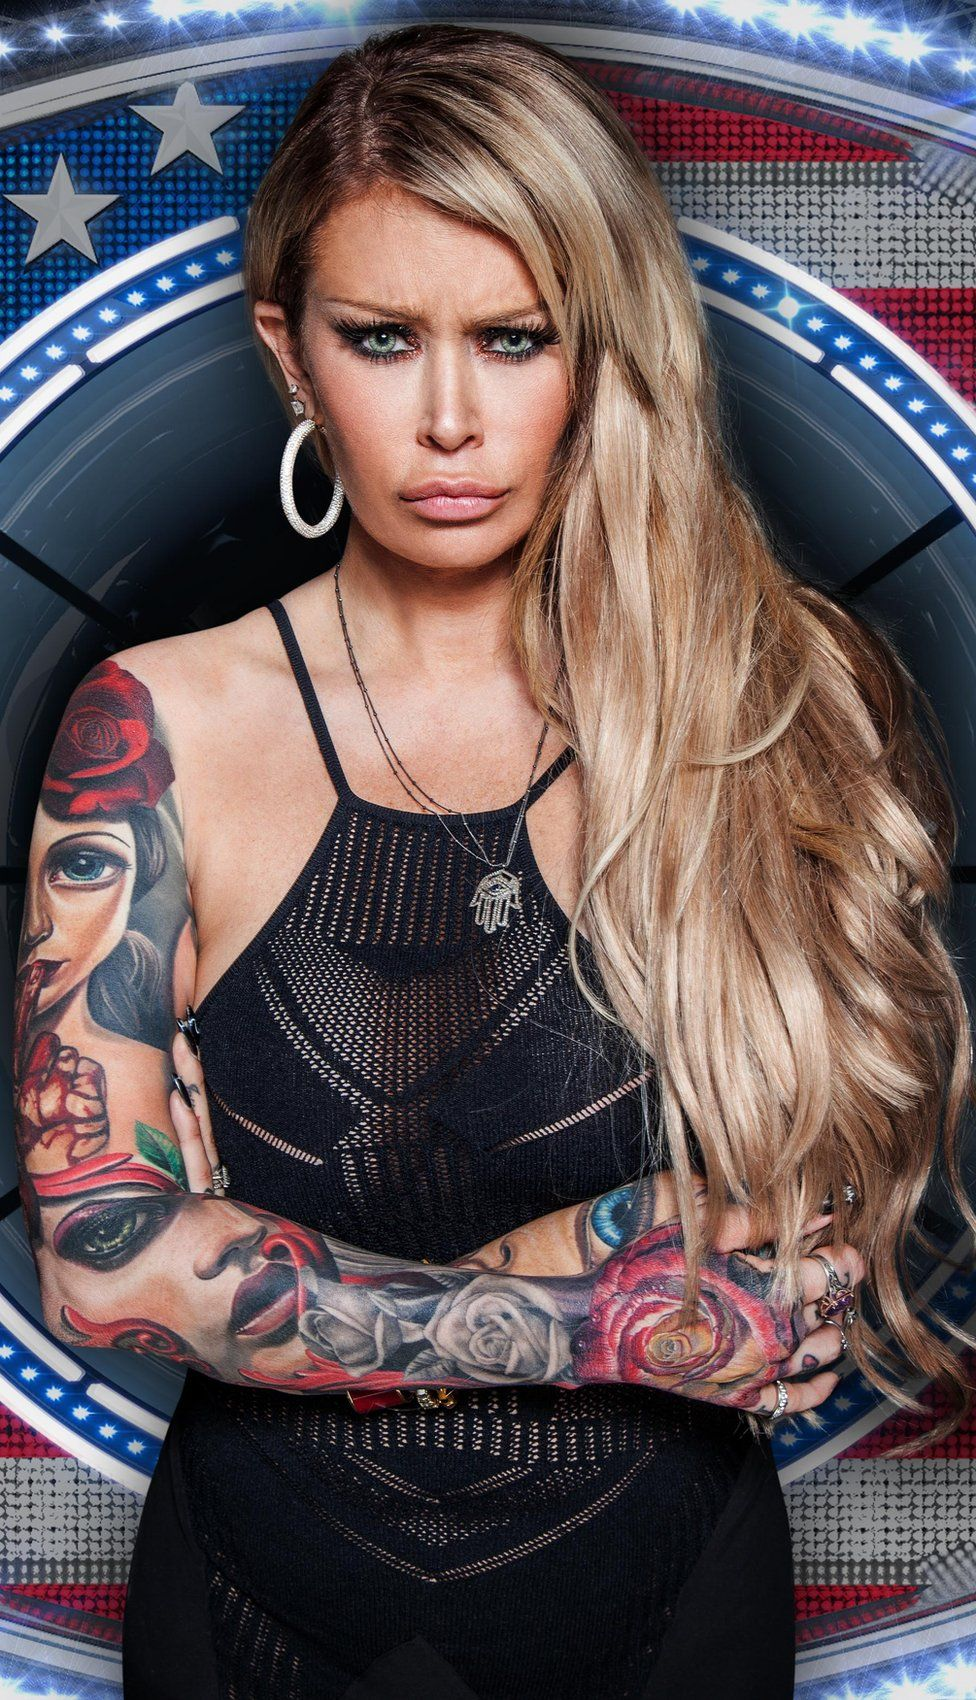 Celebrites Jenna Jameson nude (49 foto and video), Sexy, Hot, Boobs, braless 2019